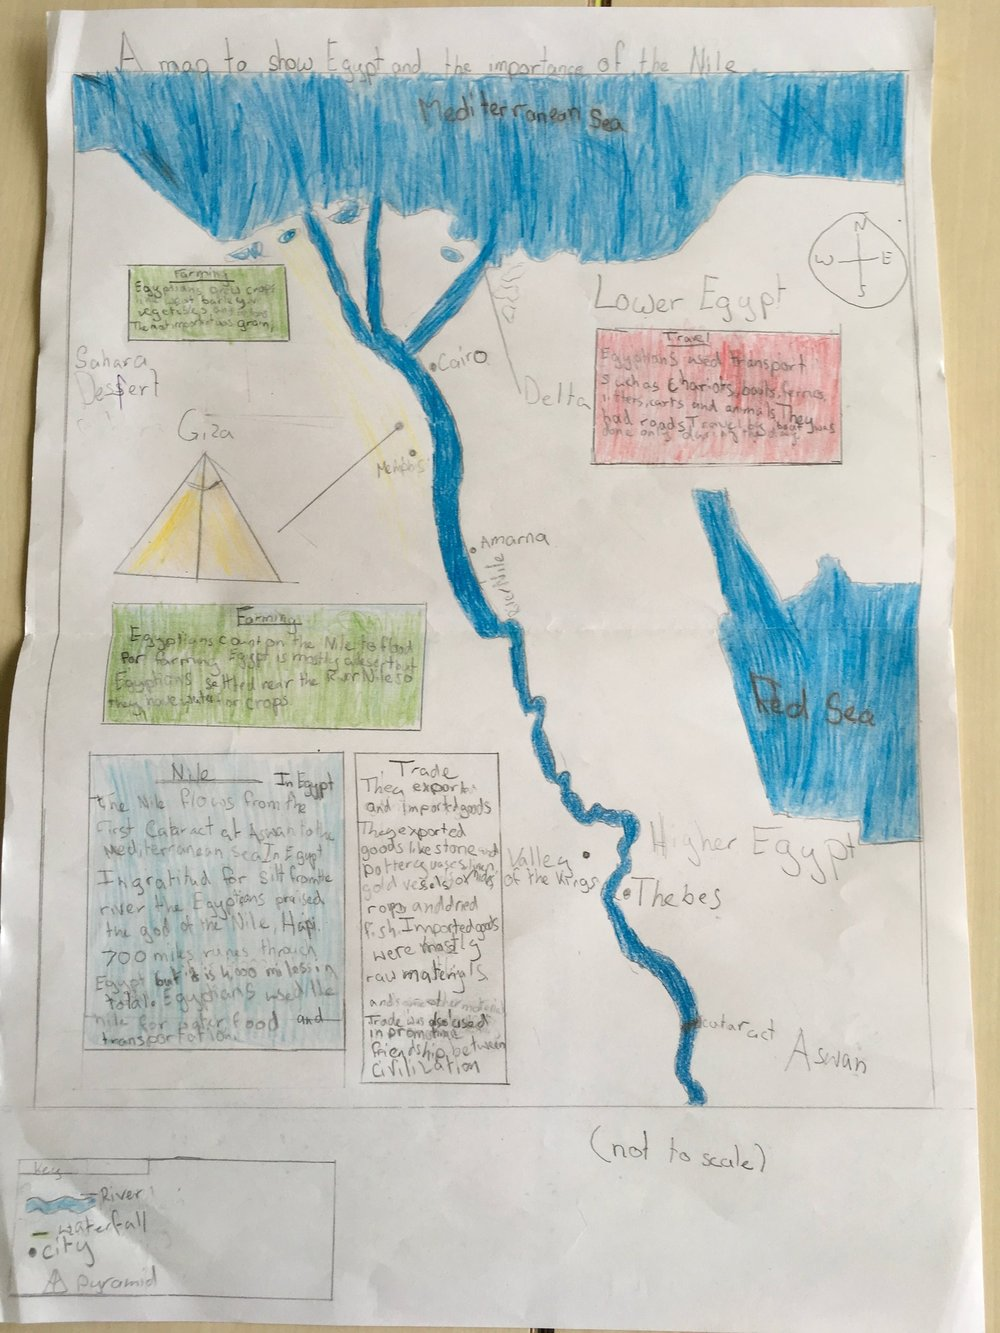 Year Maps Of Ancient Egypt Nationsinsocorg - Map of ancient egypt for students